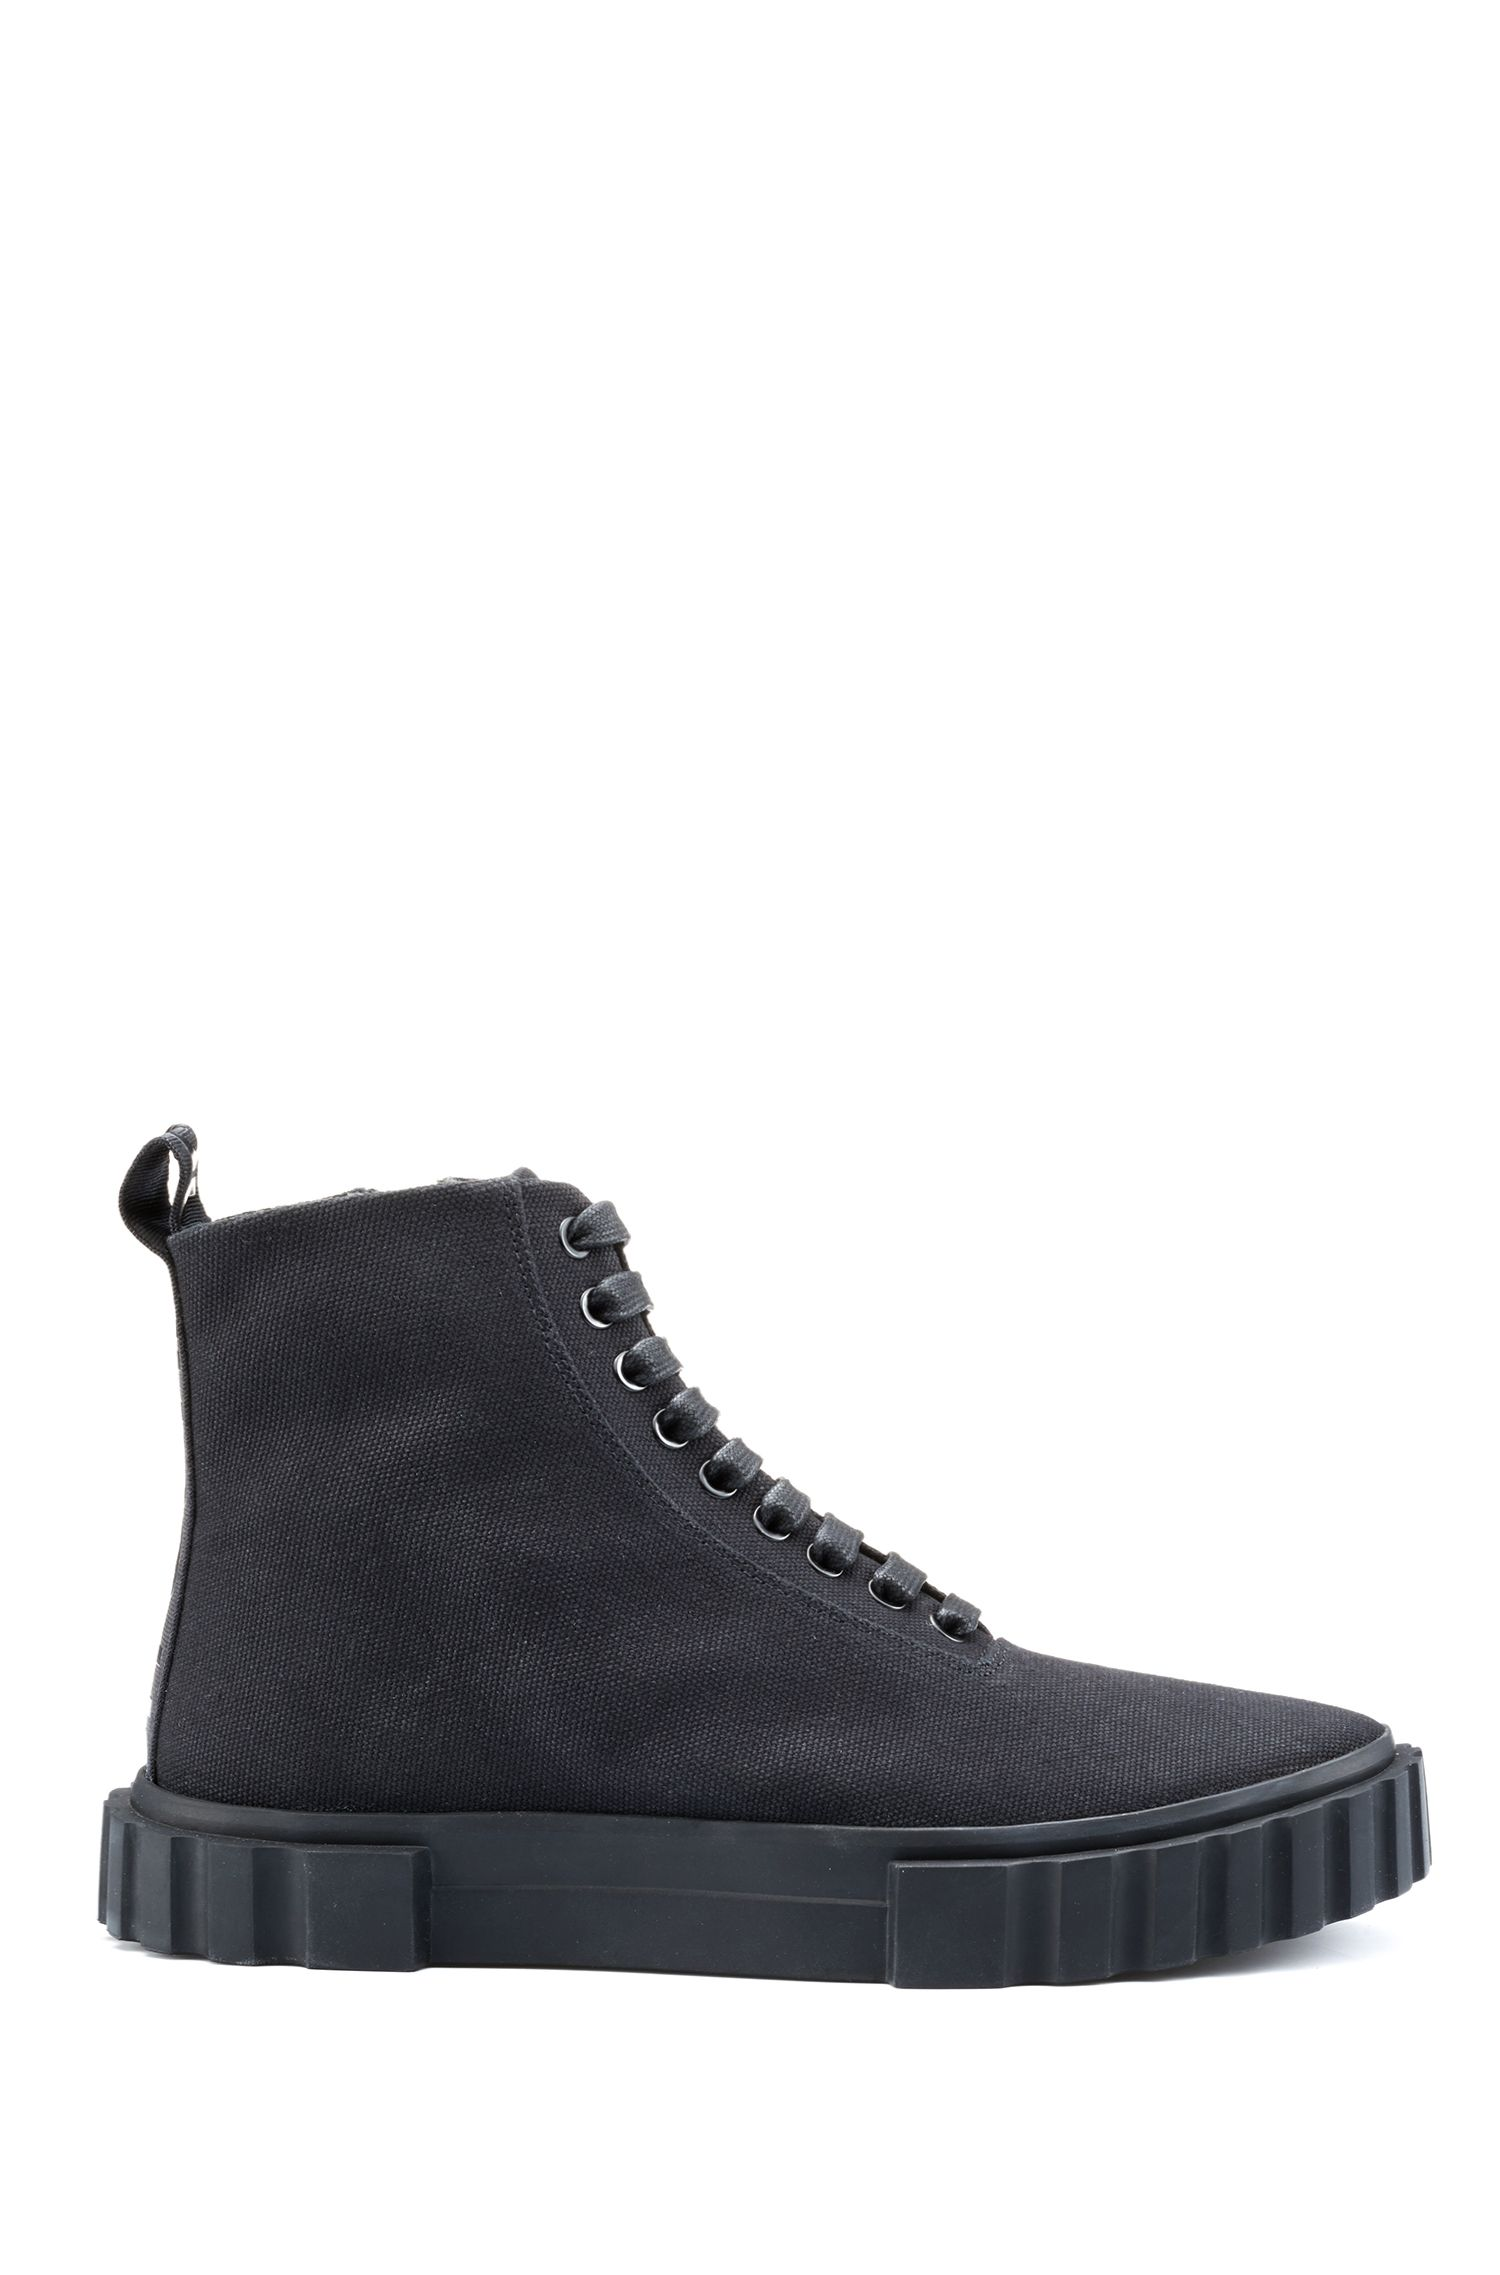 High-top trainers in cotton canvas, Black